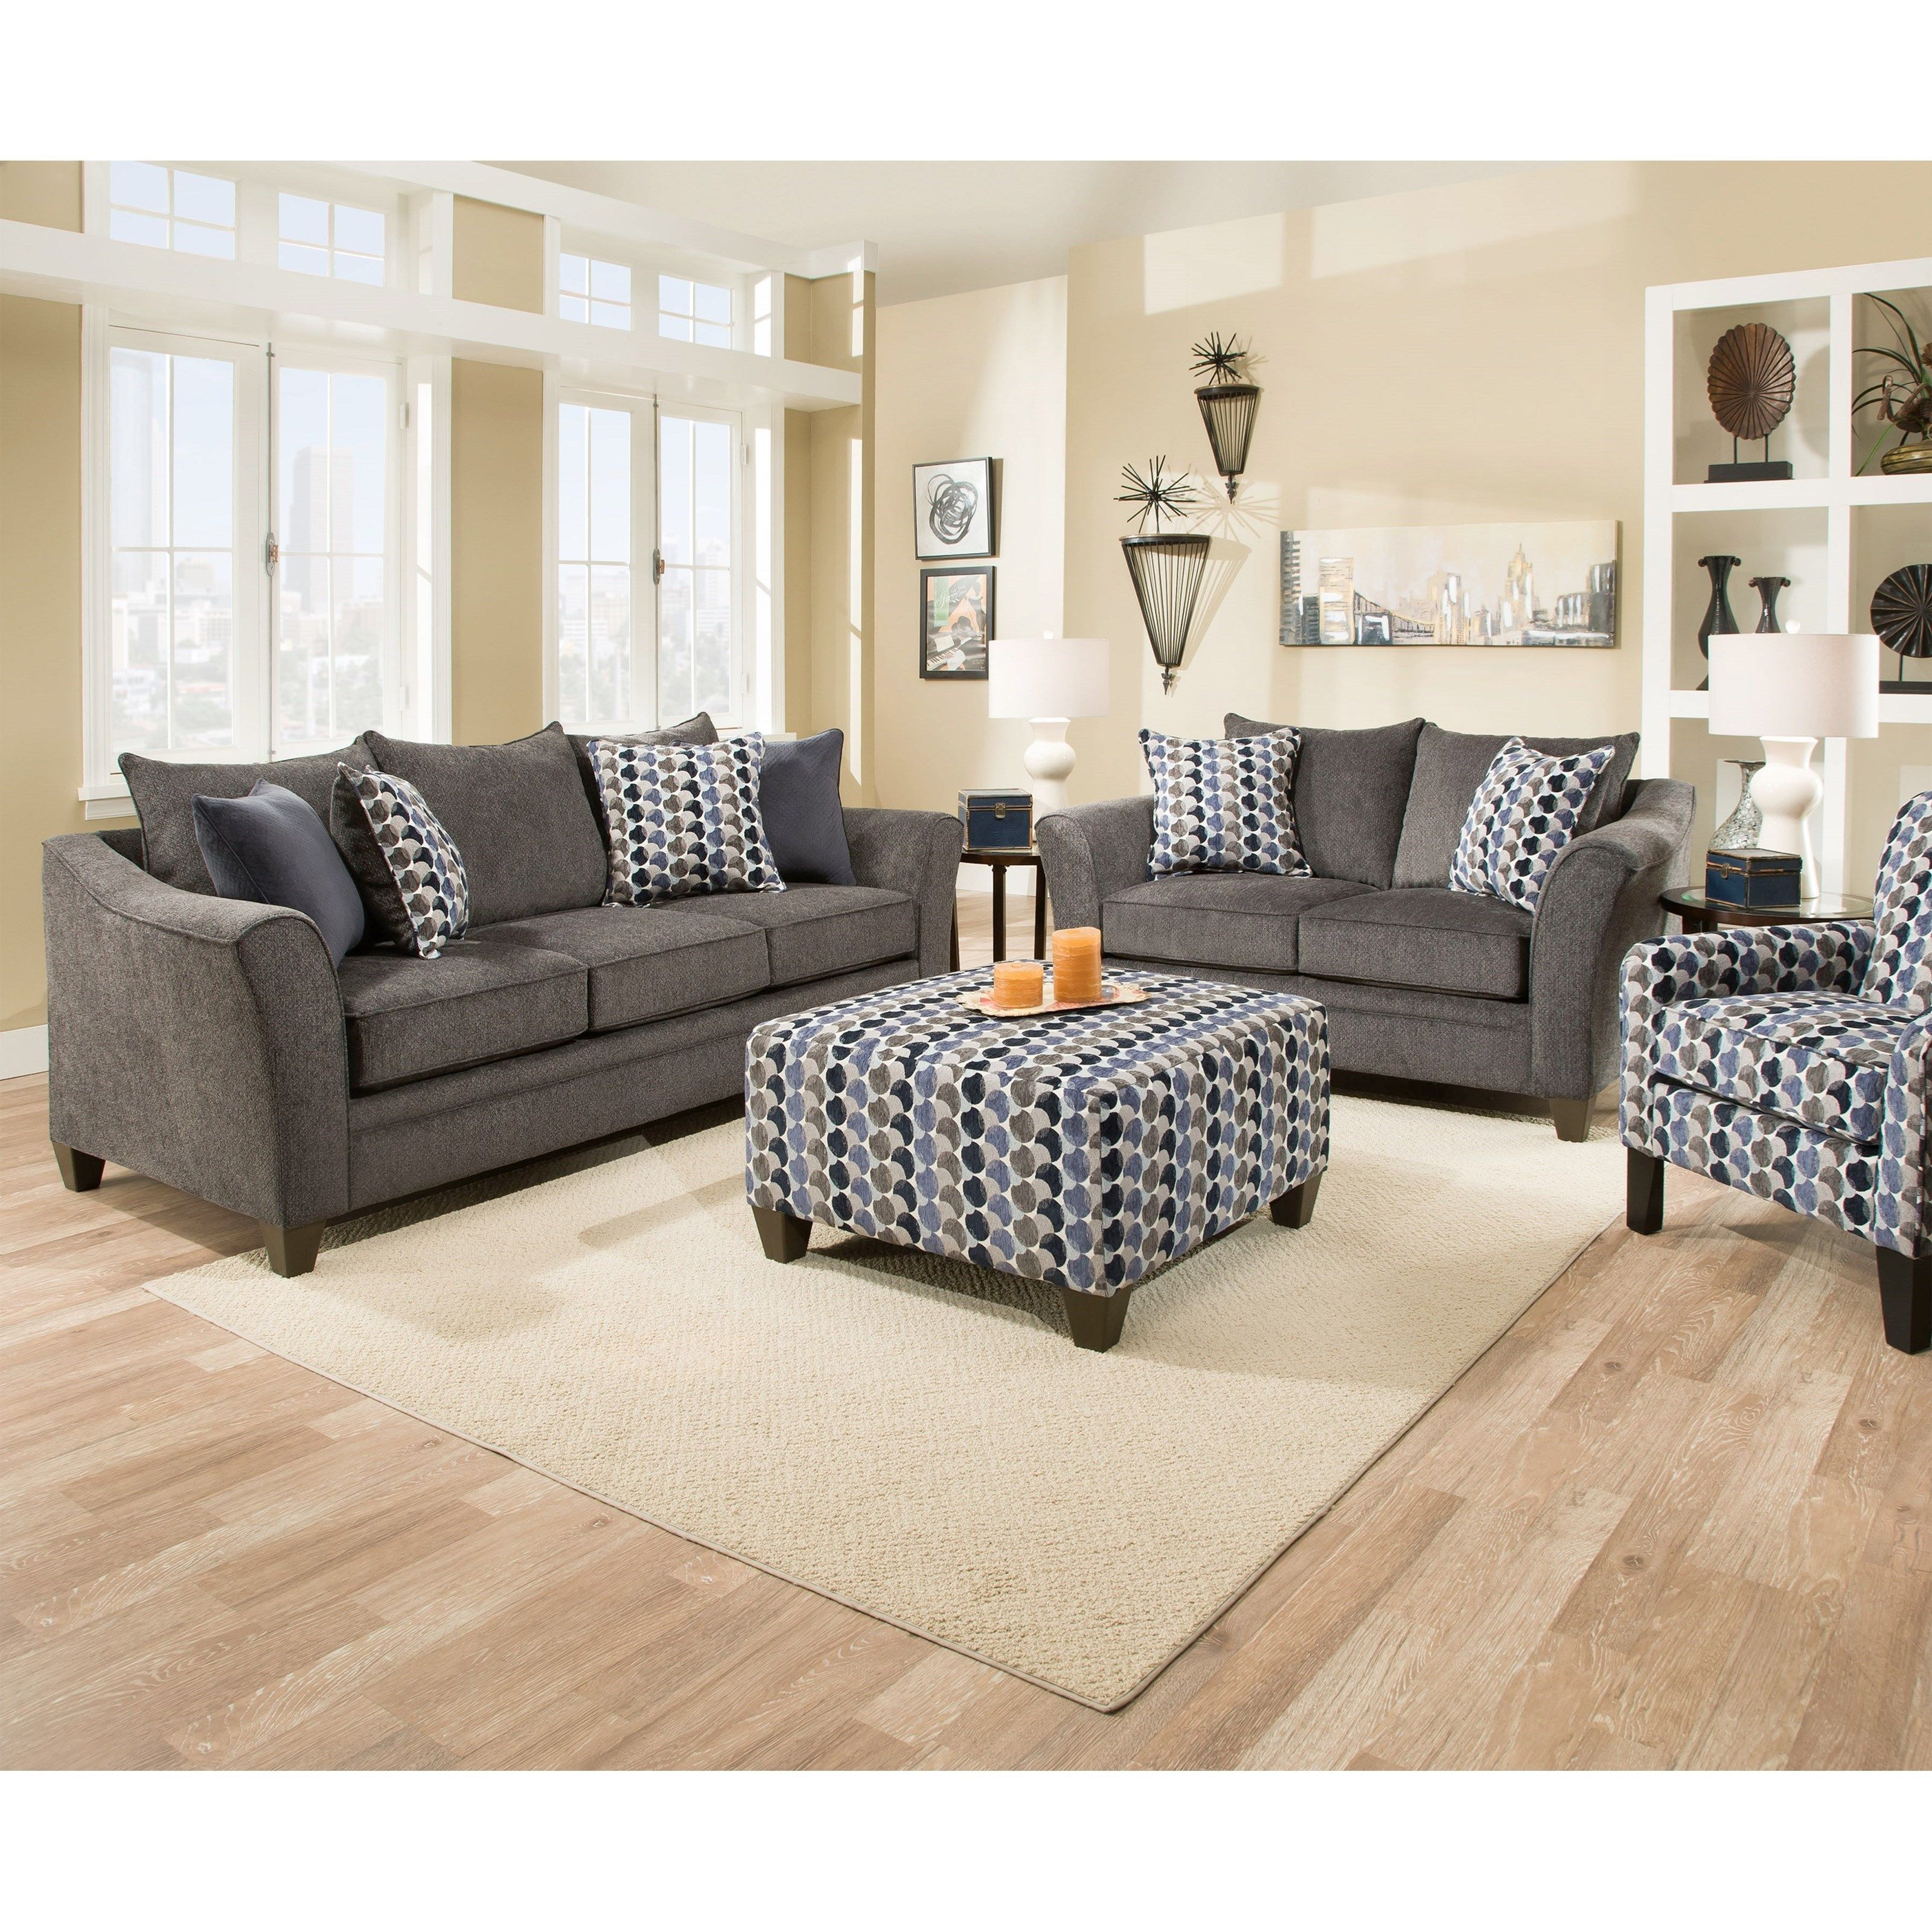 Living Room Groups United Furniture Industries 6485stationary Living